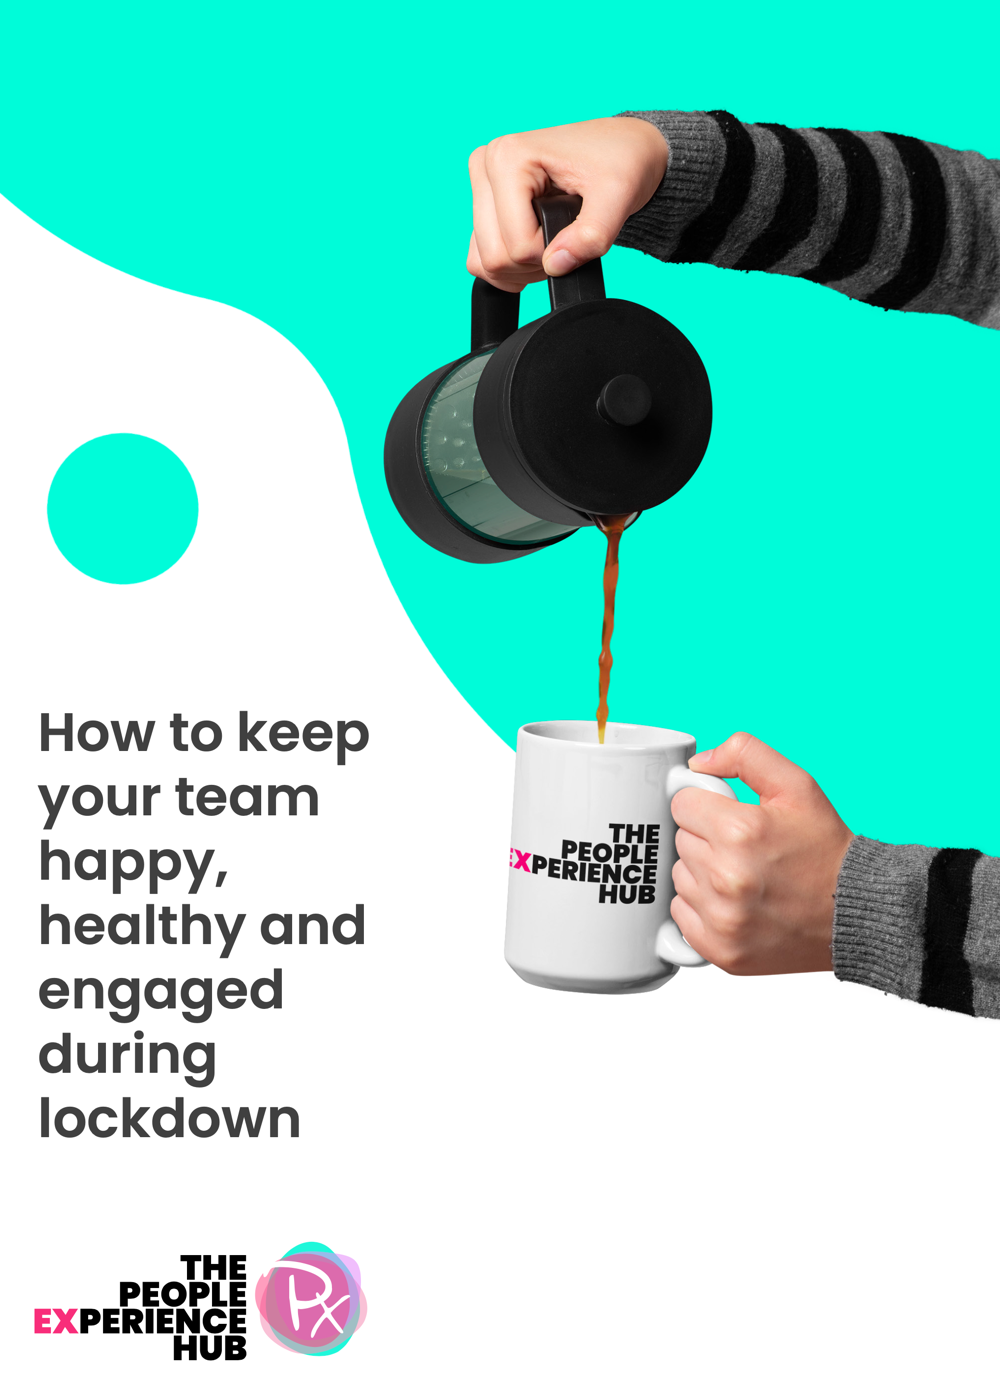 Keep your team happy and engaged